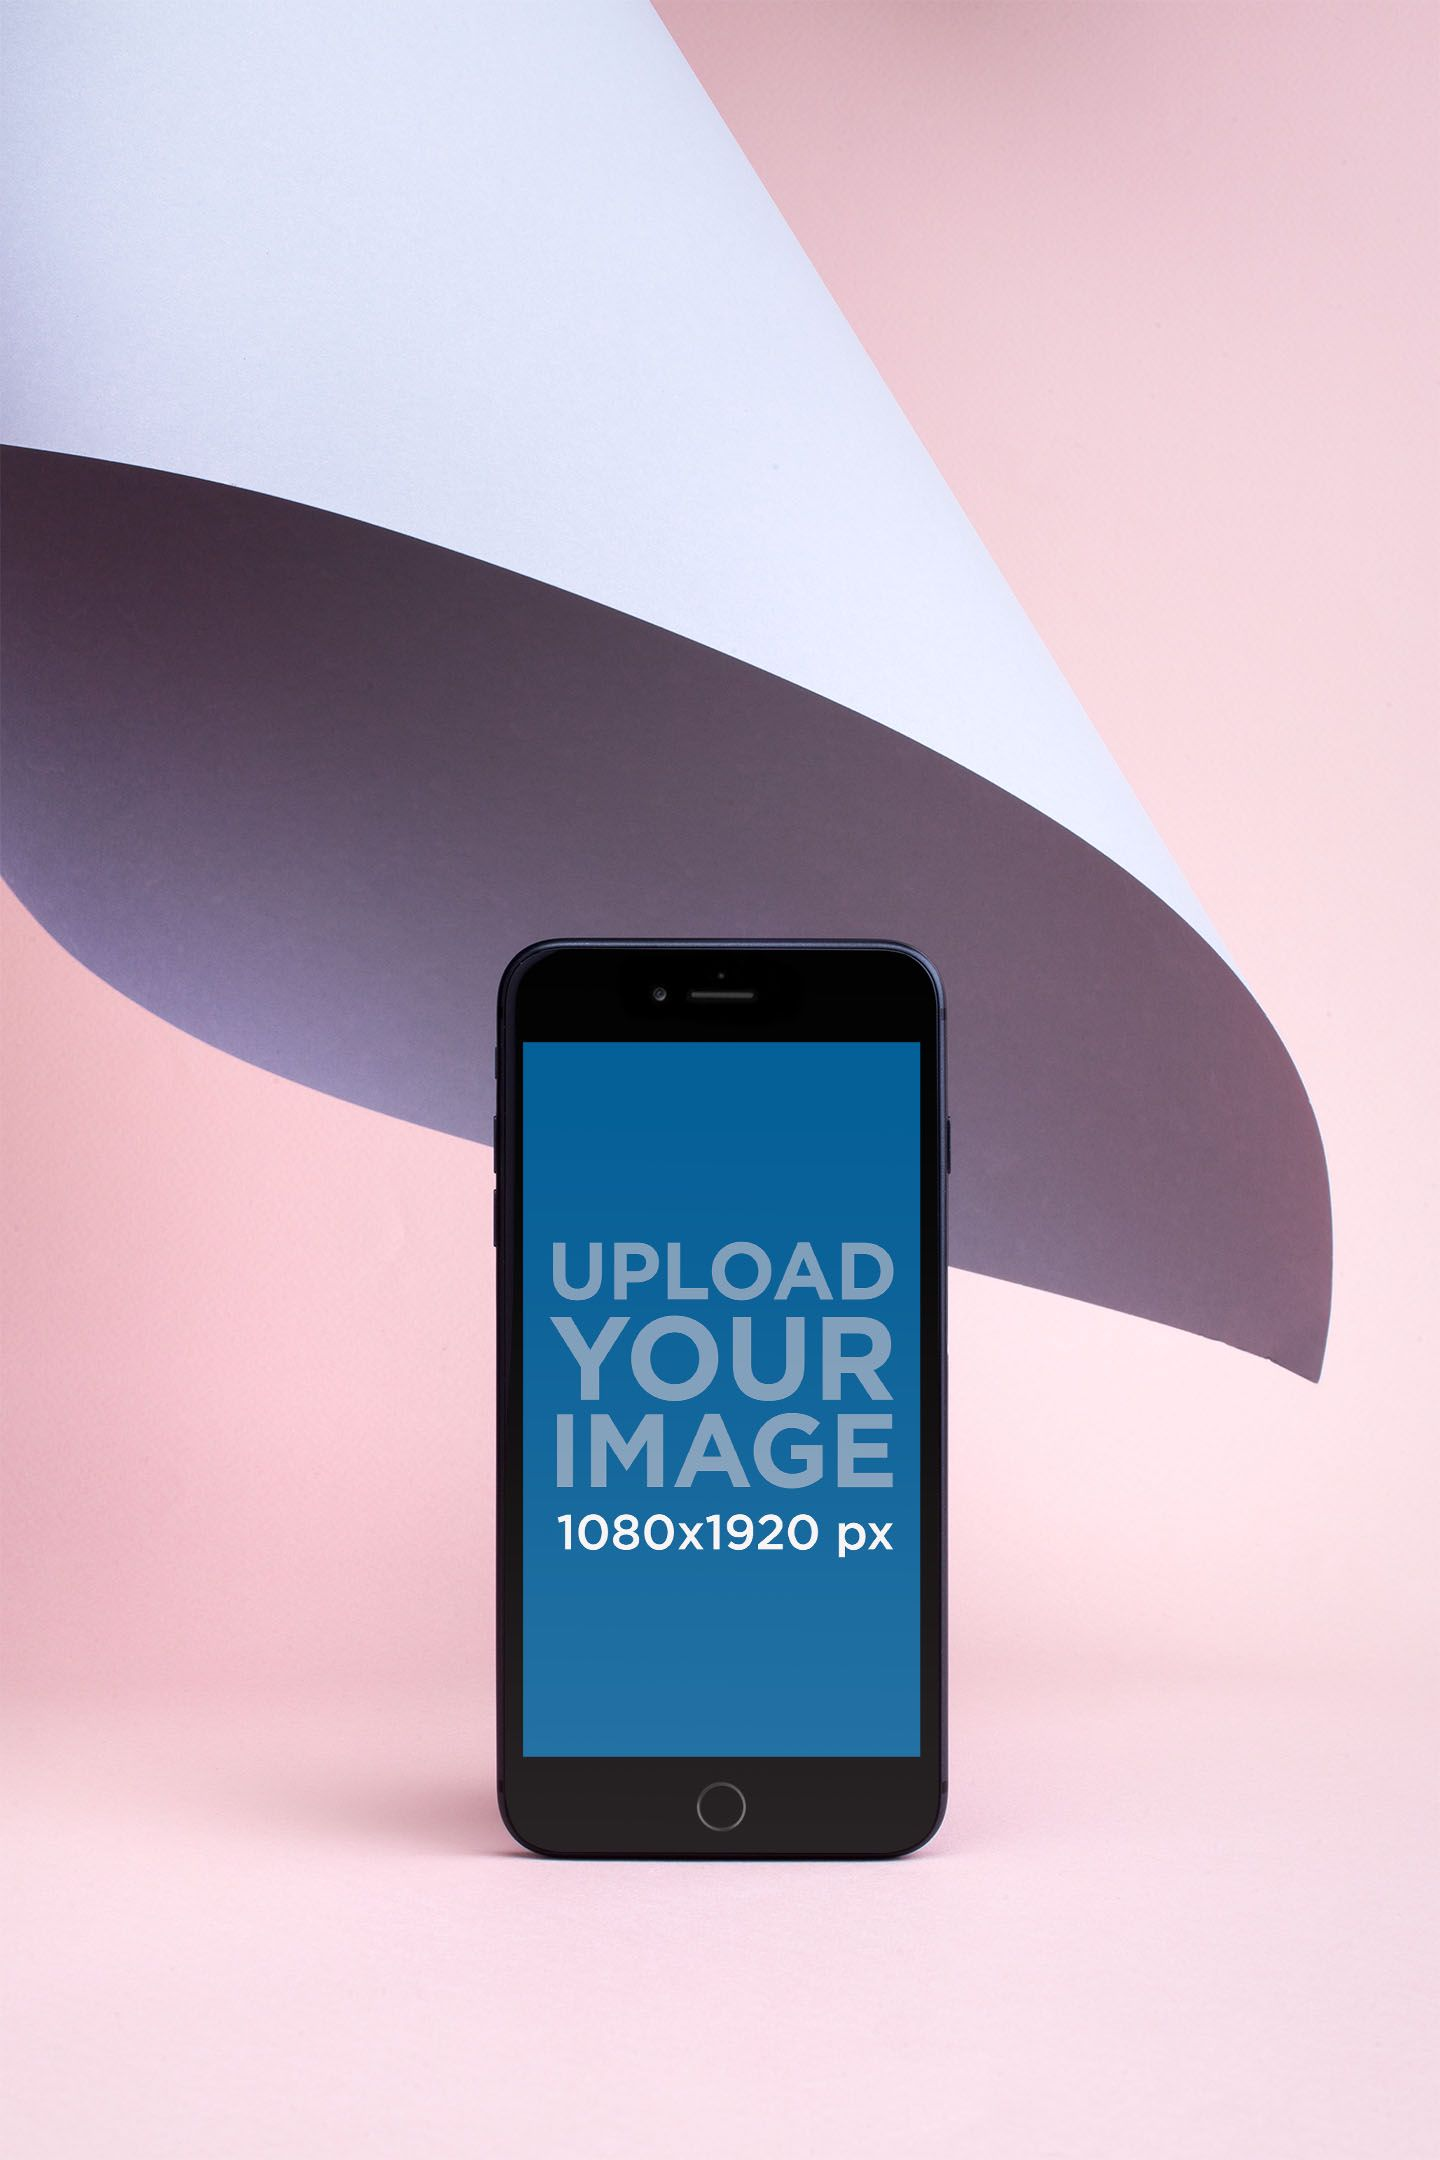 Download Placeit Iphone 8 Plus Mockup Surrounded By Pastel Tones Iphone 8 Plus Iphone Mockup Iphone